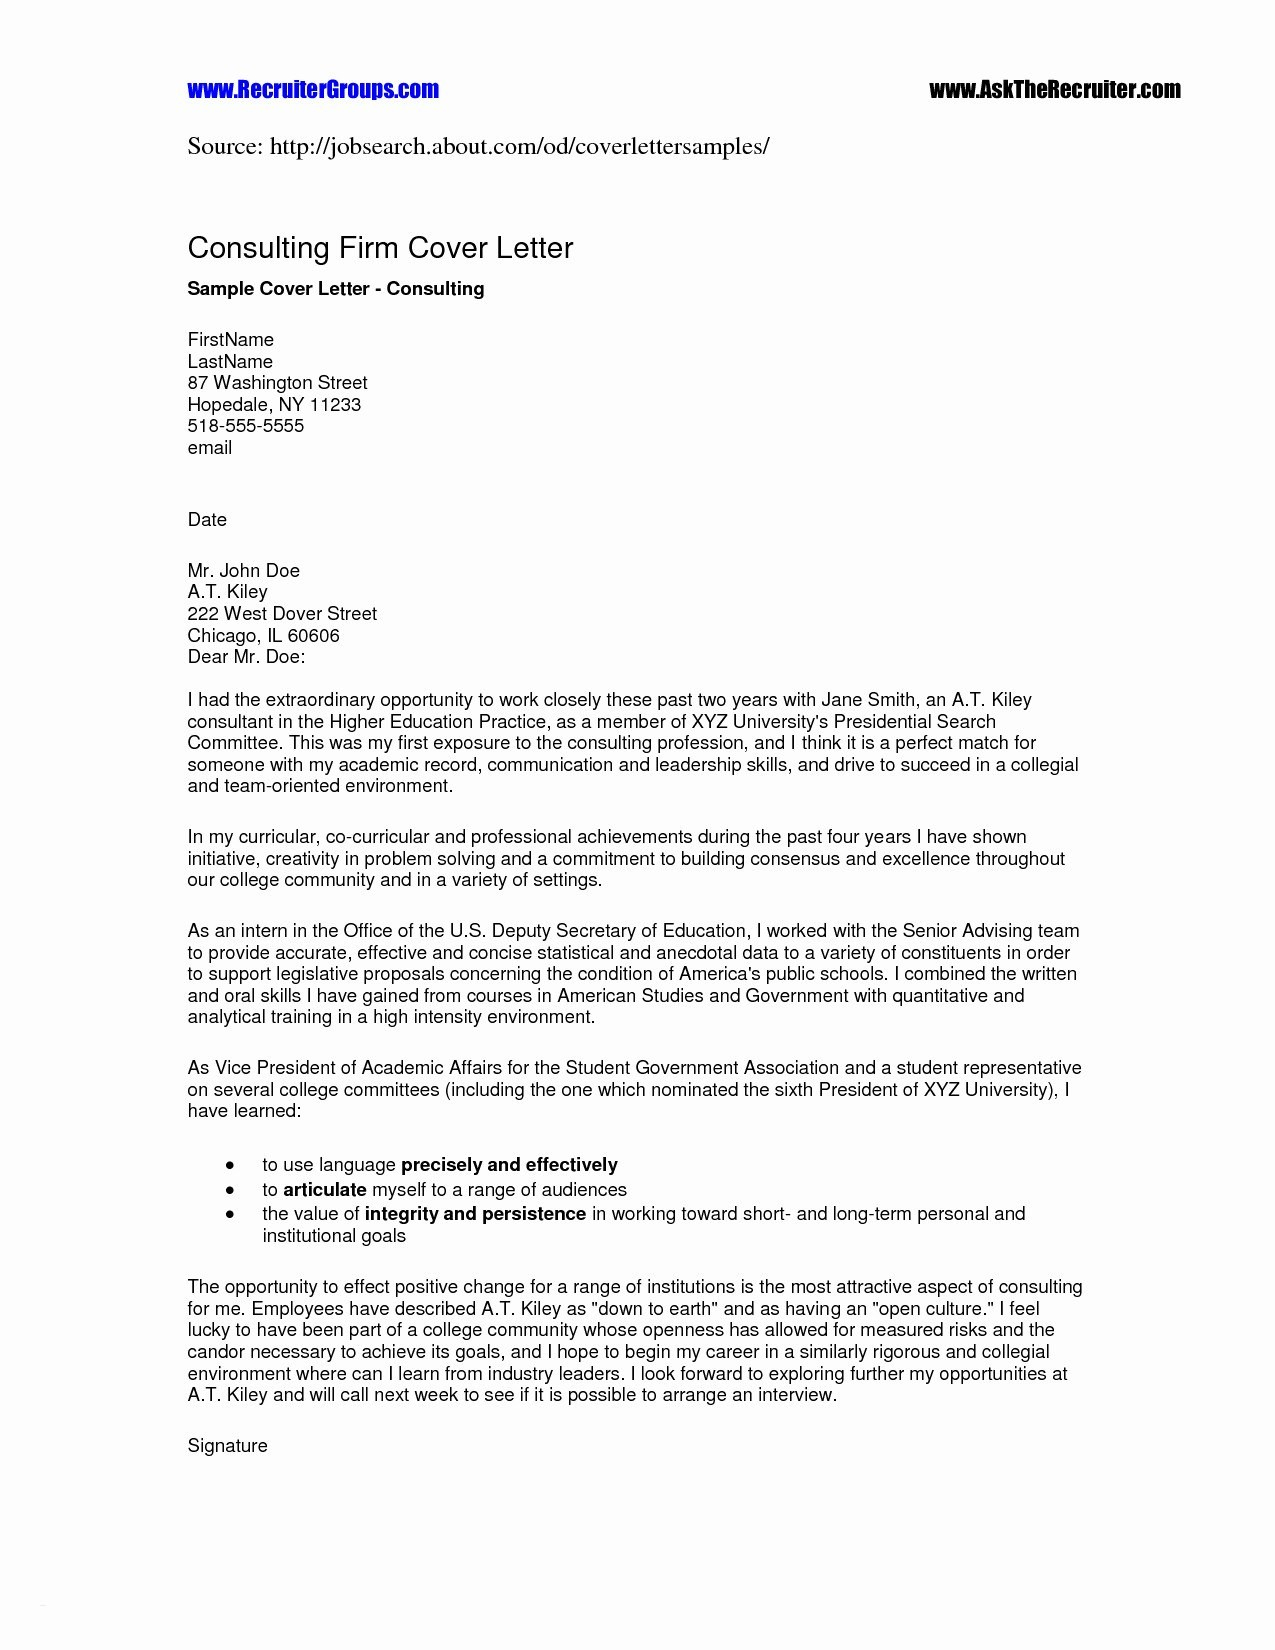 Nursing Resume Cover Letter Template Free - Nurse Job Cover Letter Samples Fresh Nursing Resume and Cover Letter